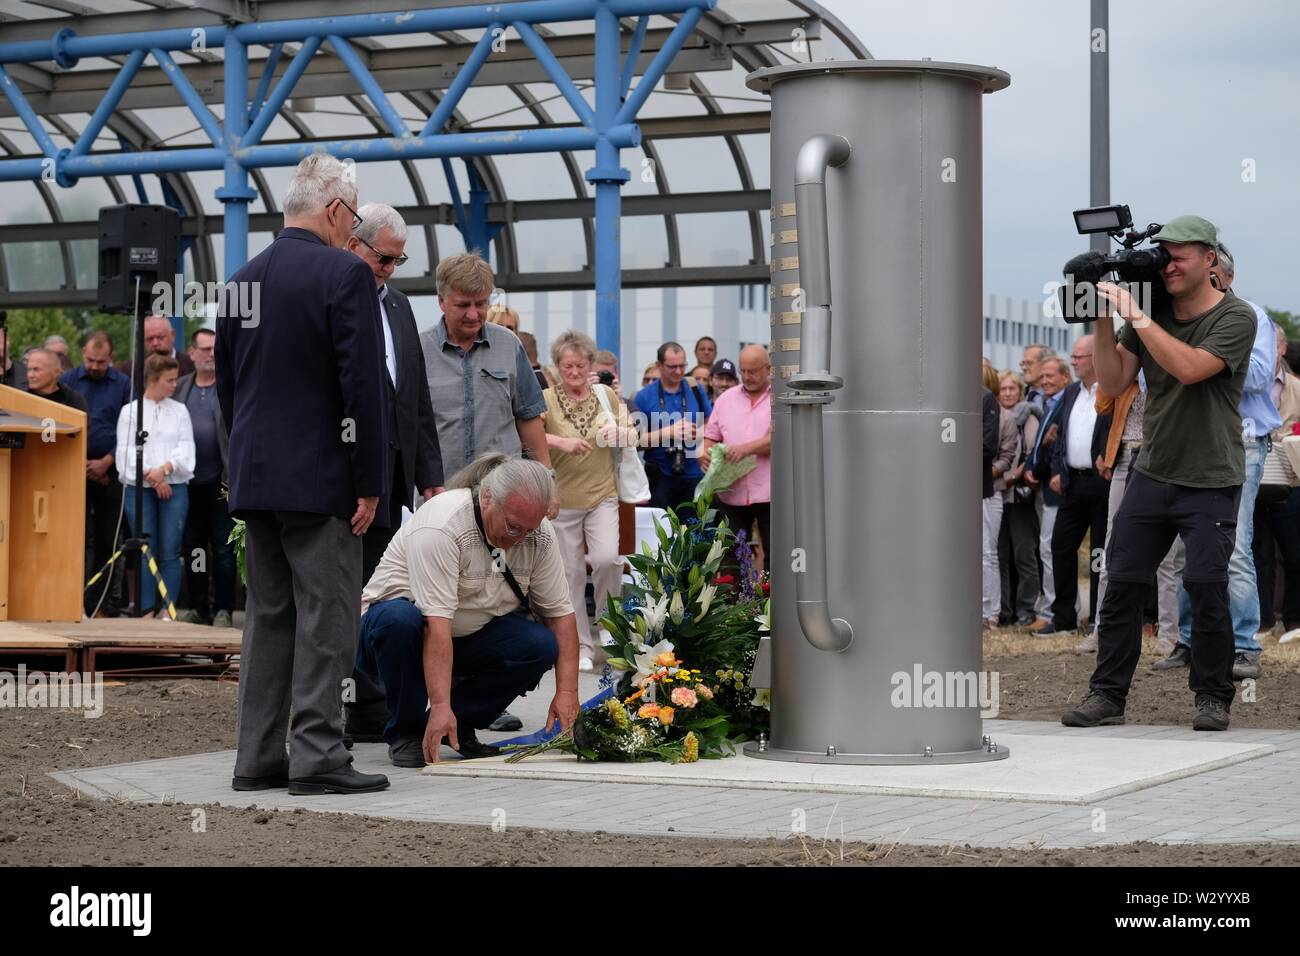 11 July 2019, Saxony-Anhalt, Bitterfeld-Wolfen: Participants in a commemoration ceremony place flowers at a monument in the Chemical Park. A stele commemorates the victims of the chemical accident of 11.07.1968, when 42 people died and more than 240 were injured. Photo: Sebastian Willnow/dpa-Zentralbild/ZB - Stock Image